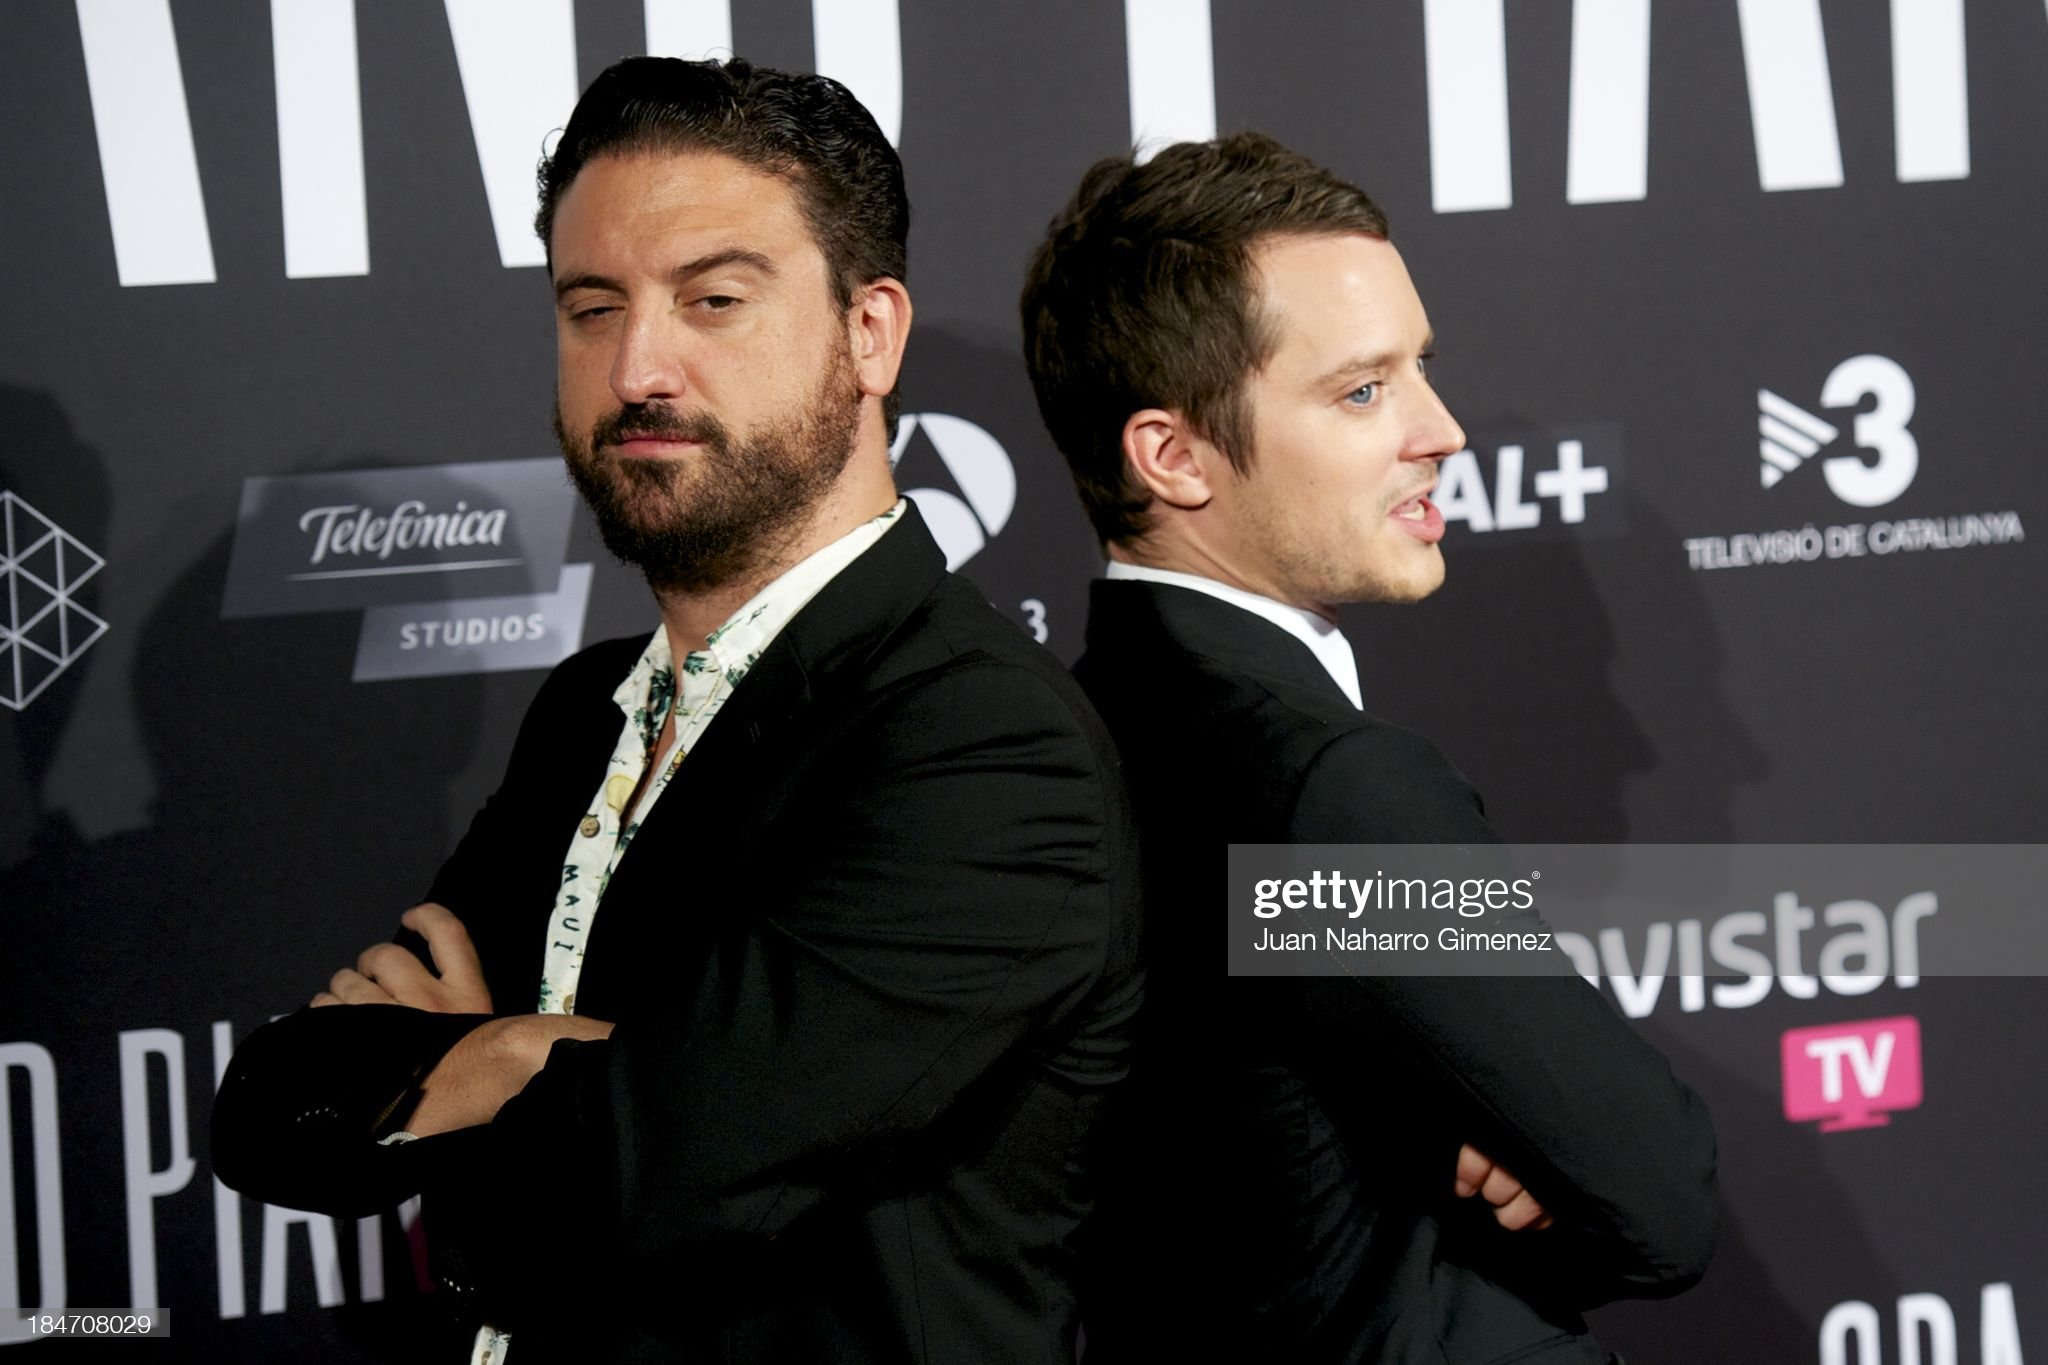 ¿Cuánto mide Eugenio Mira? - Altura Spanish-director-eugenio-mira-and-actor-elijah-wood-attend-grand-at-picture-id184708029?s=2048x2048